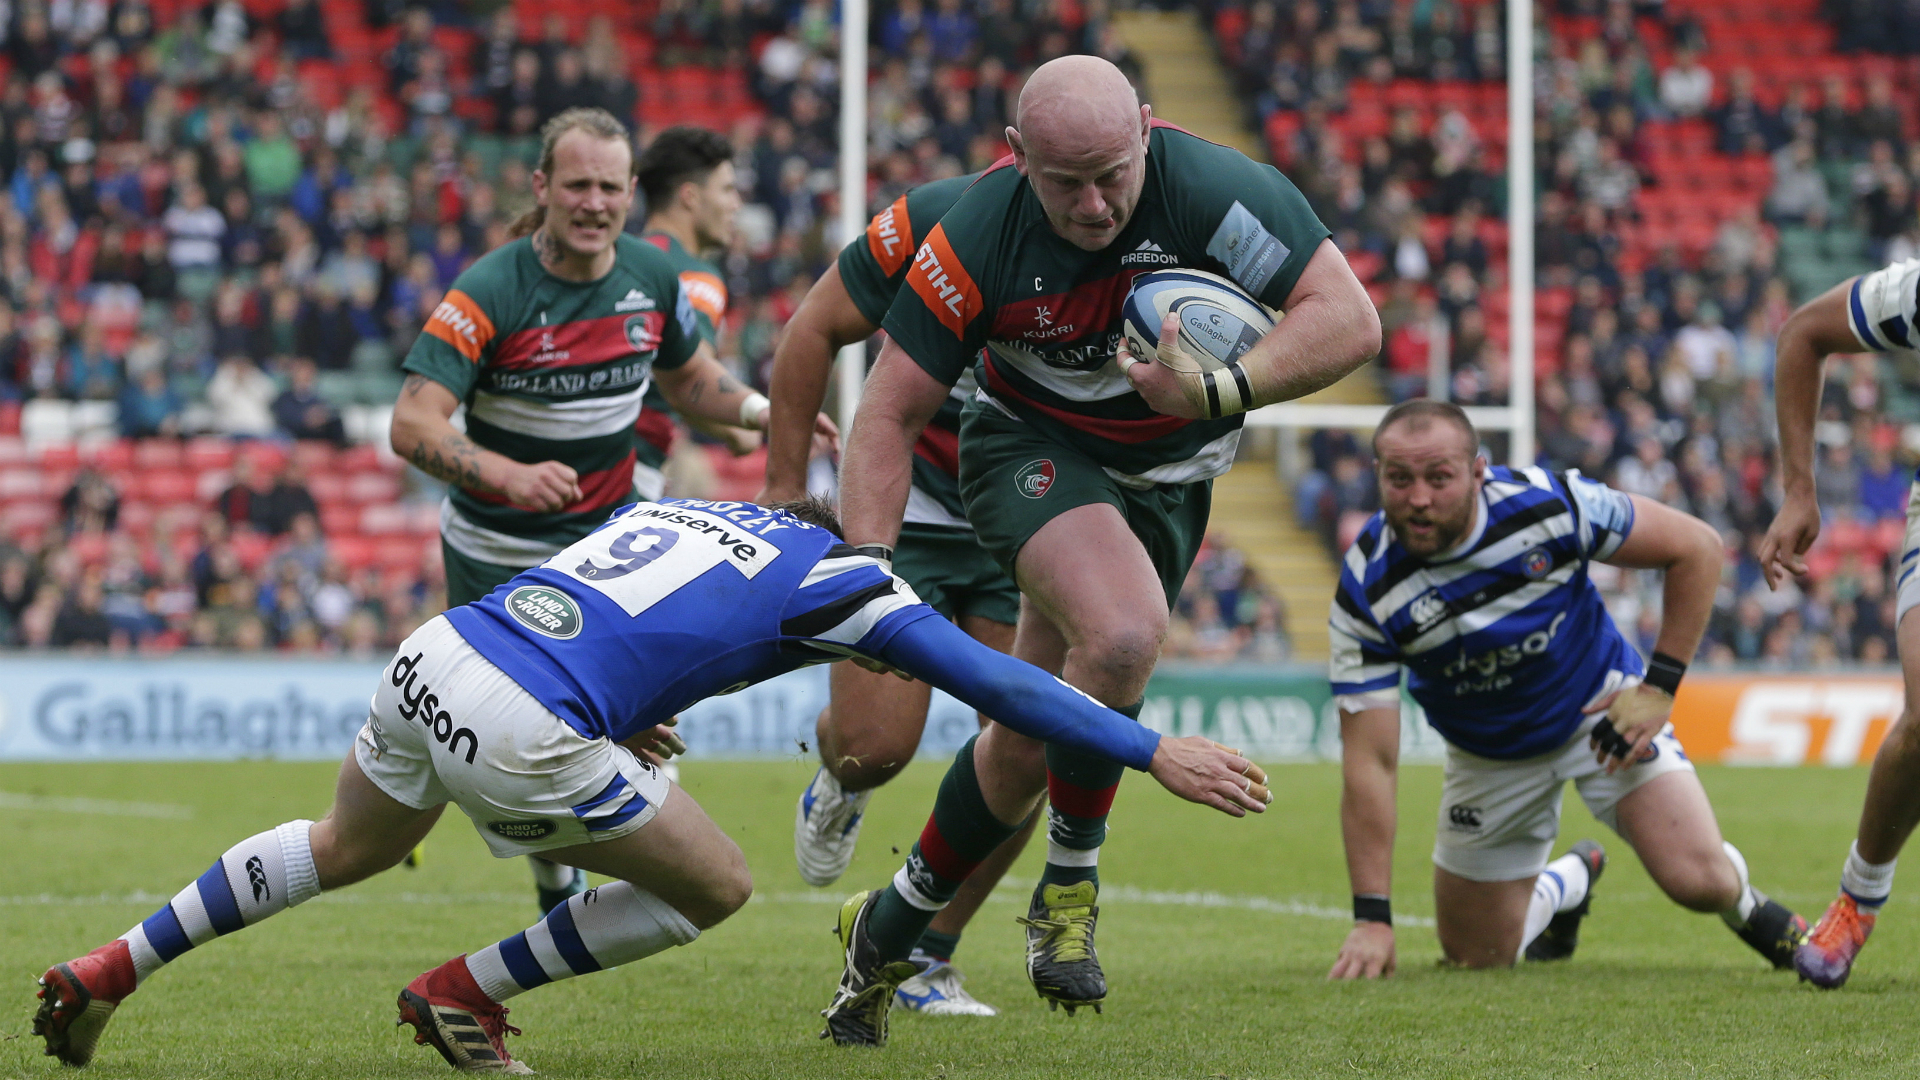 CVC's acquisition of a stake in Premiership Rugby Limited has prompted the Leicester Tigers board to put the club up for sale.